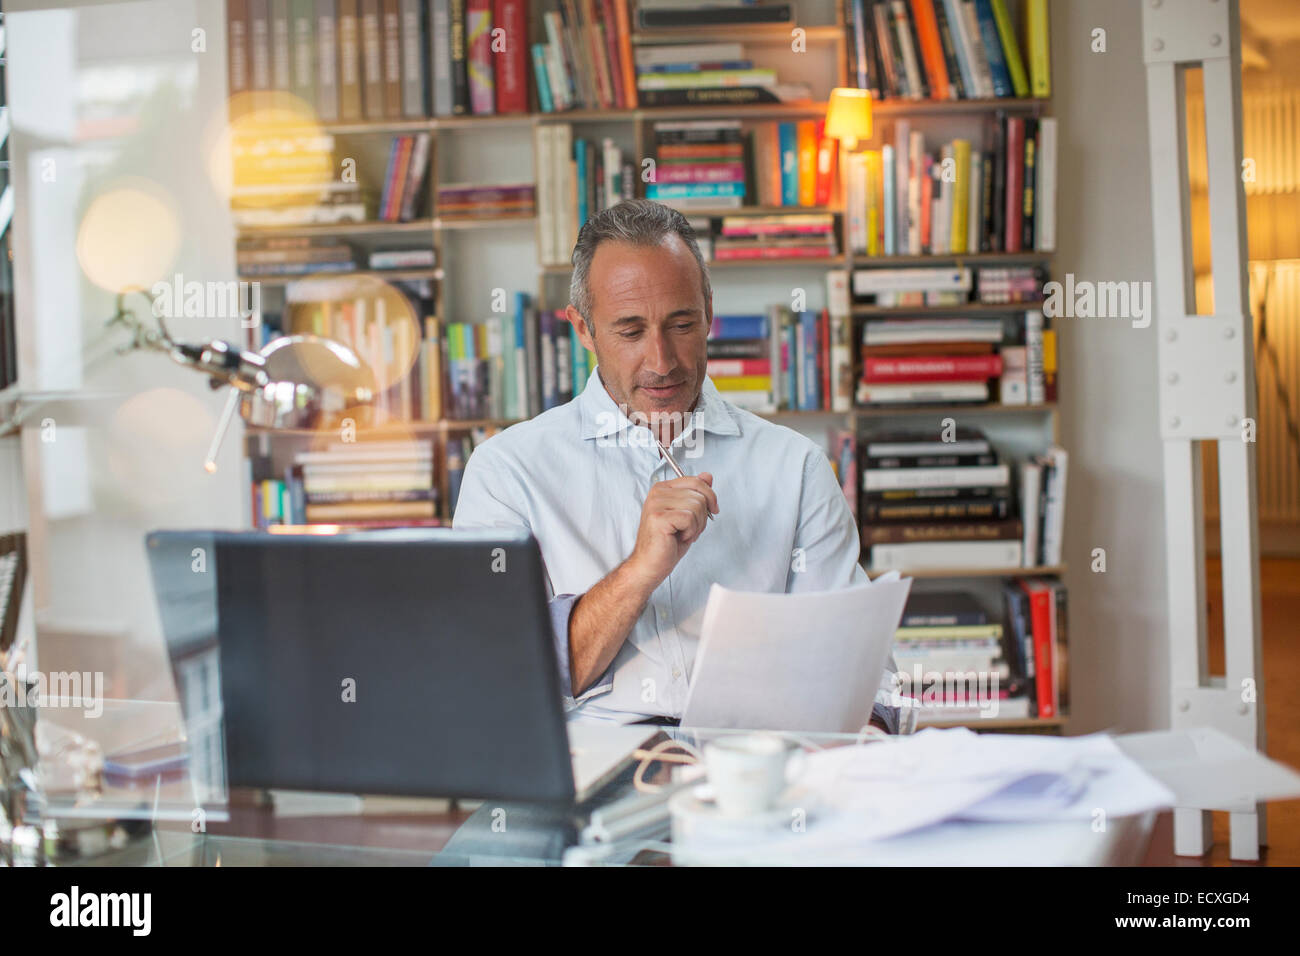 Businessman reading paperwork at home office desk - Stock Image